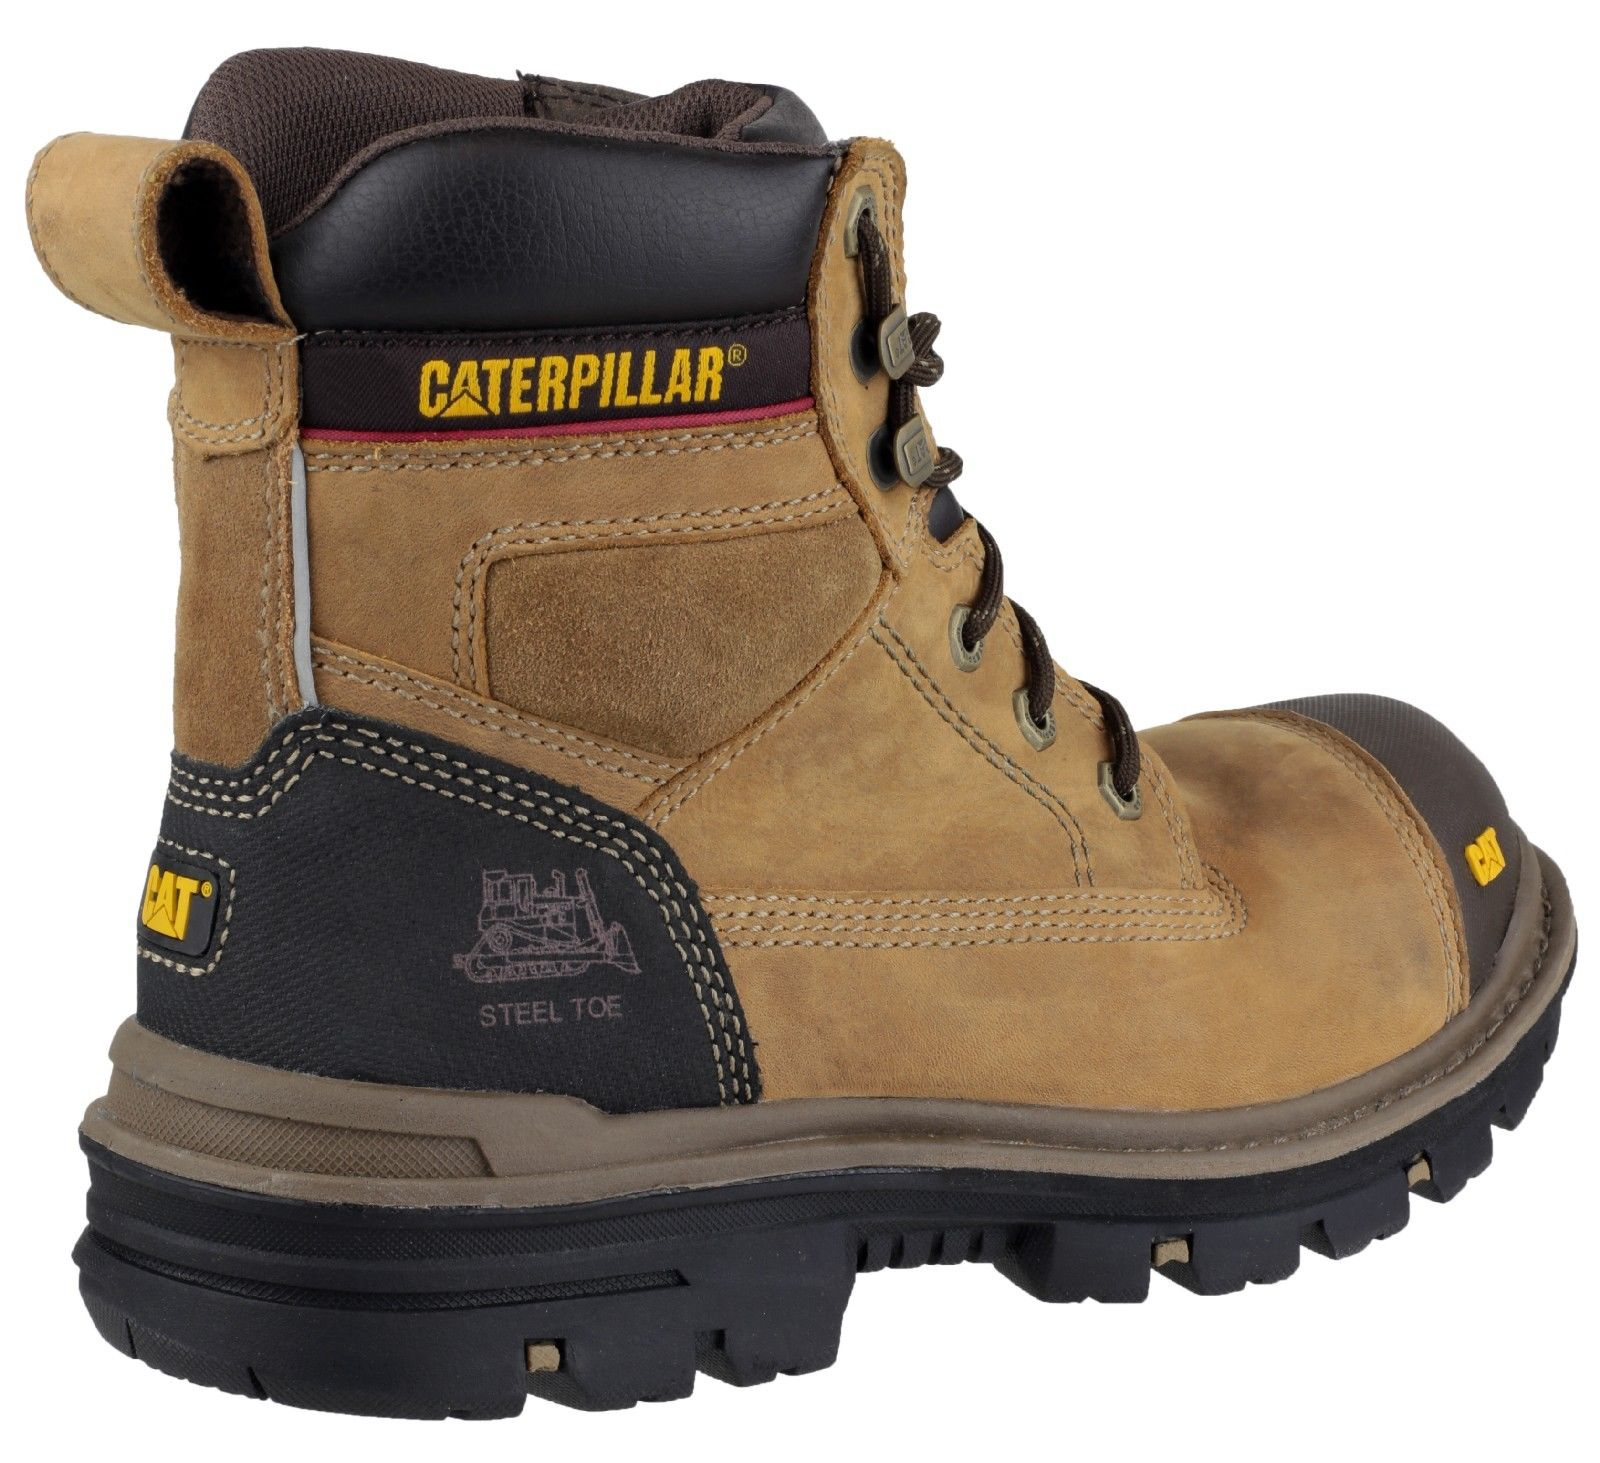 caterpillar safety boots uk